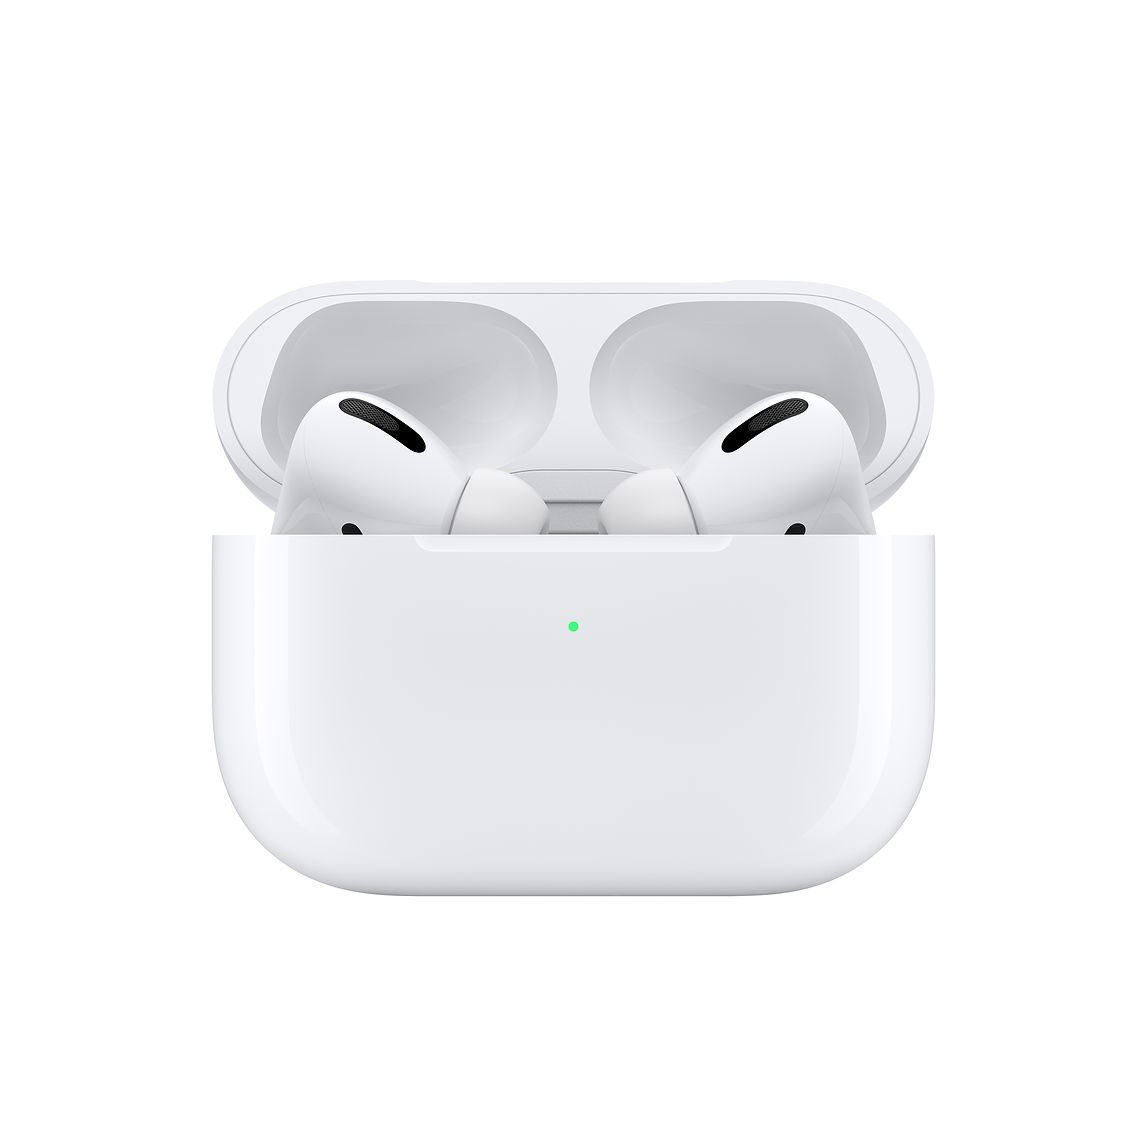 Airpod Pros In Stock Airpods Pro Noise Cancelling Active Noise Cancellation